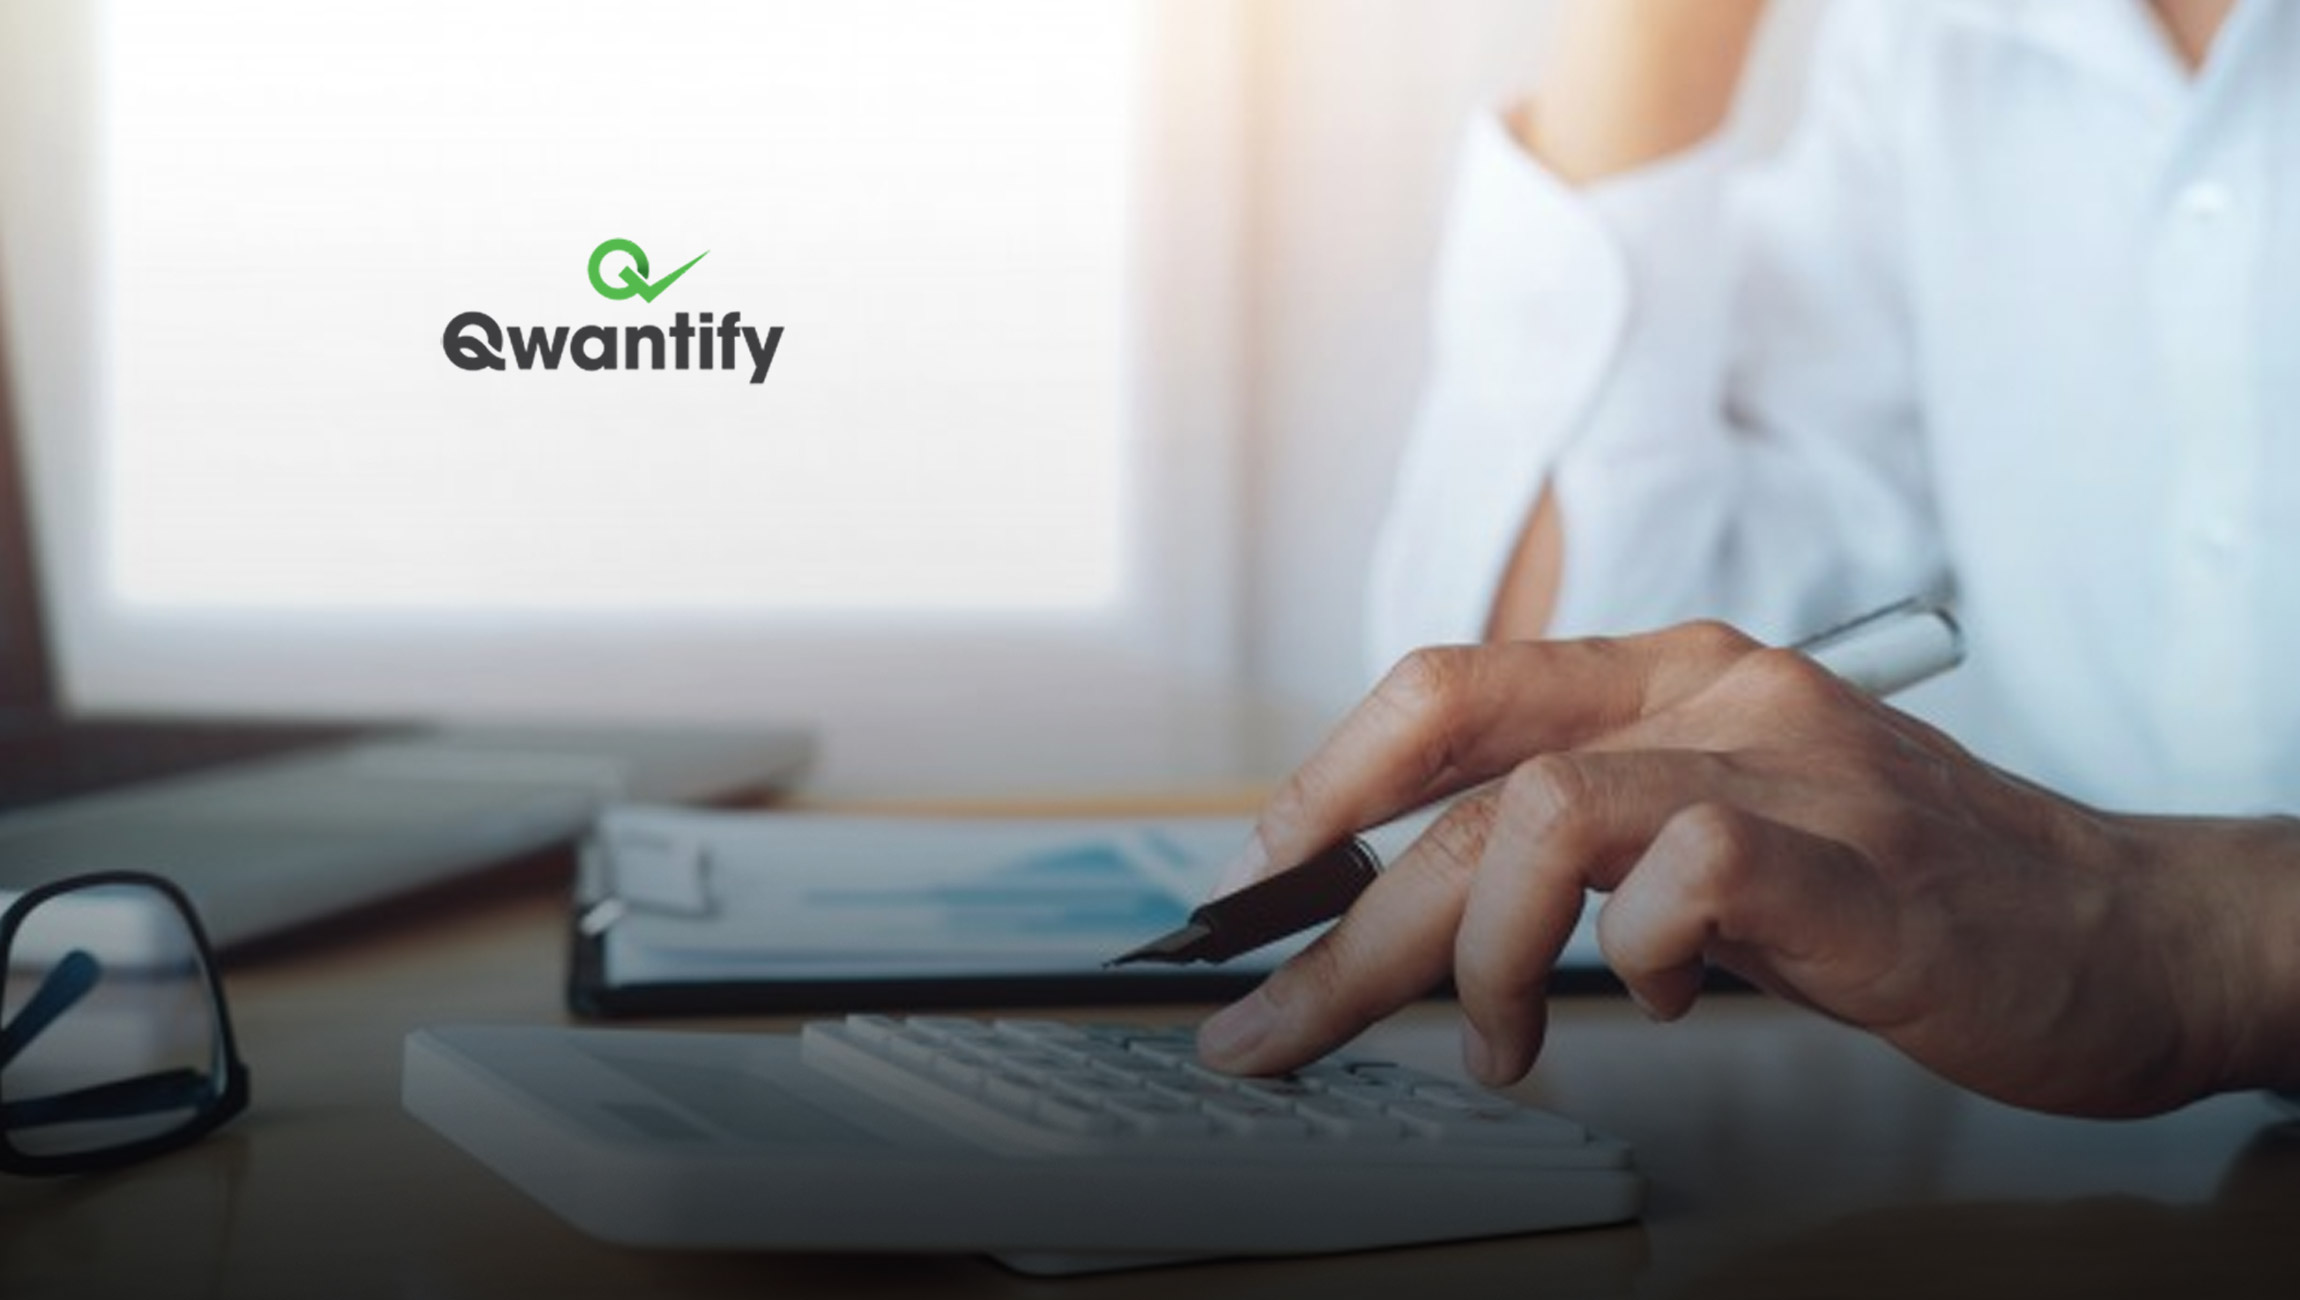 Qwantify Is Helping People Break Into eCommerce, Guaranteeing New Customers $10,000 a Month in Revenue